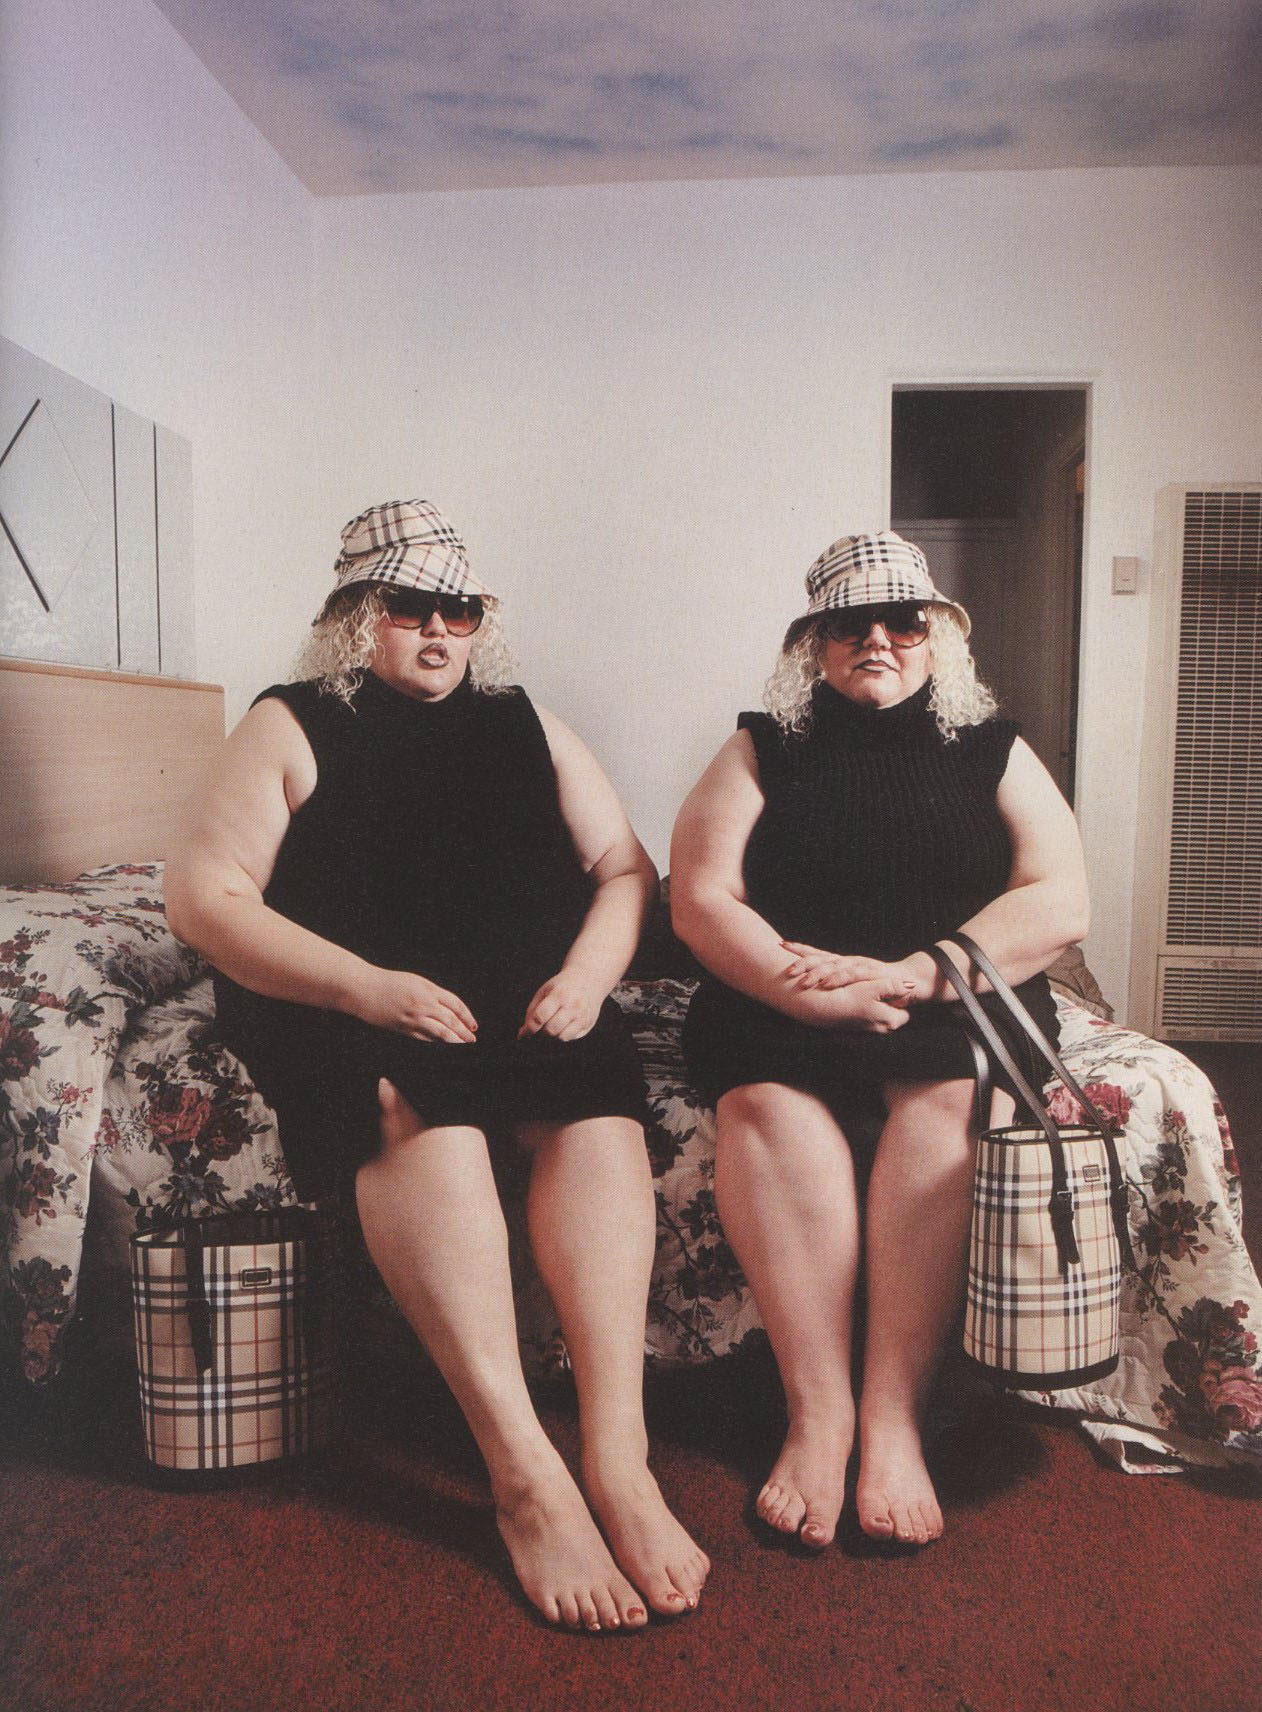 CHEREE AND BRIE AKA THE BURBERRY TWINS PHOTOGRAPHY DAVID LACHAPELLE i-D NO.196 APRIL 2000